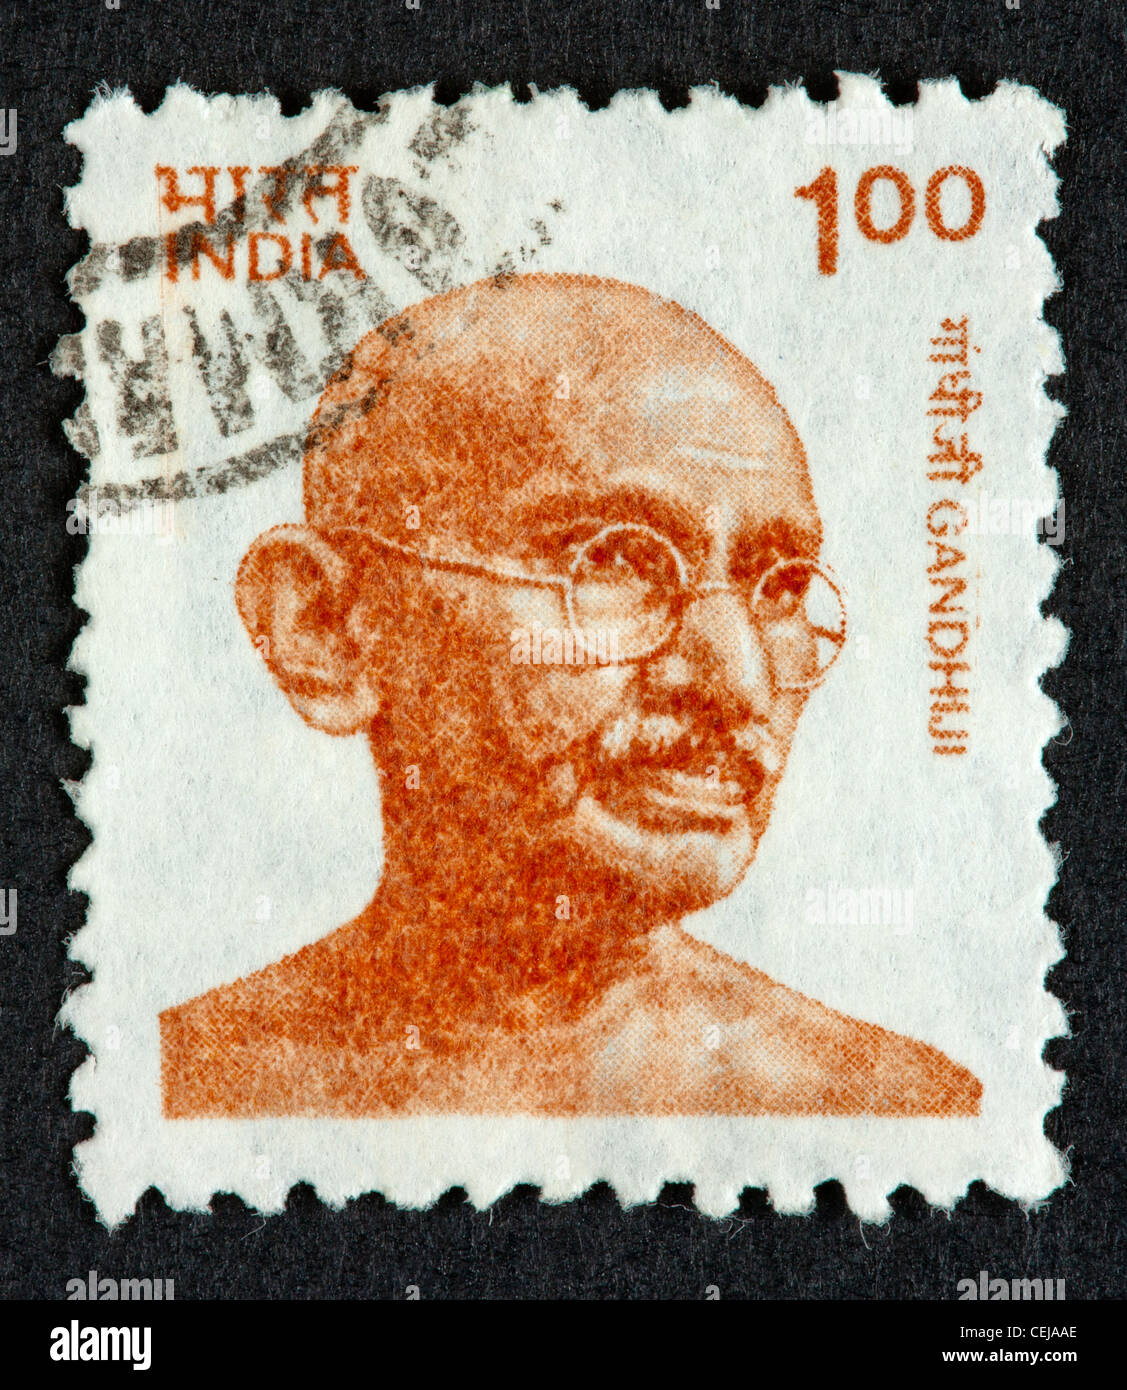 Indian postage stamp - Stock Image